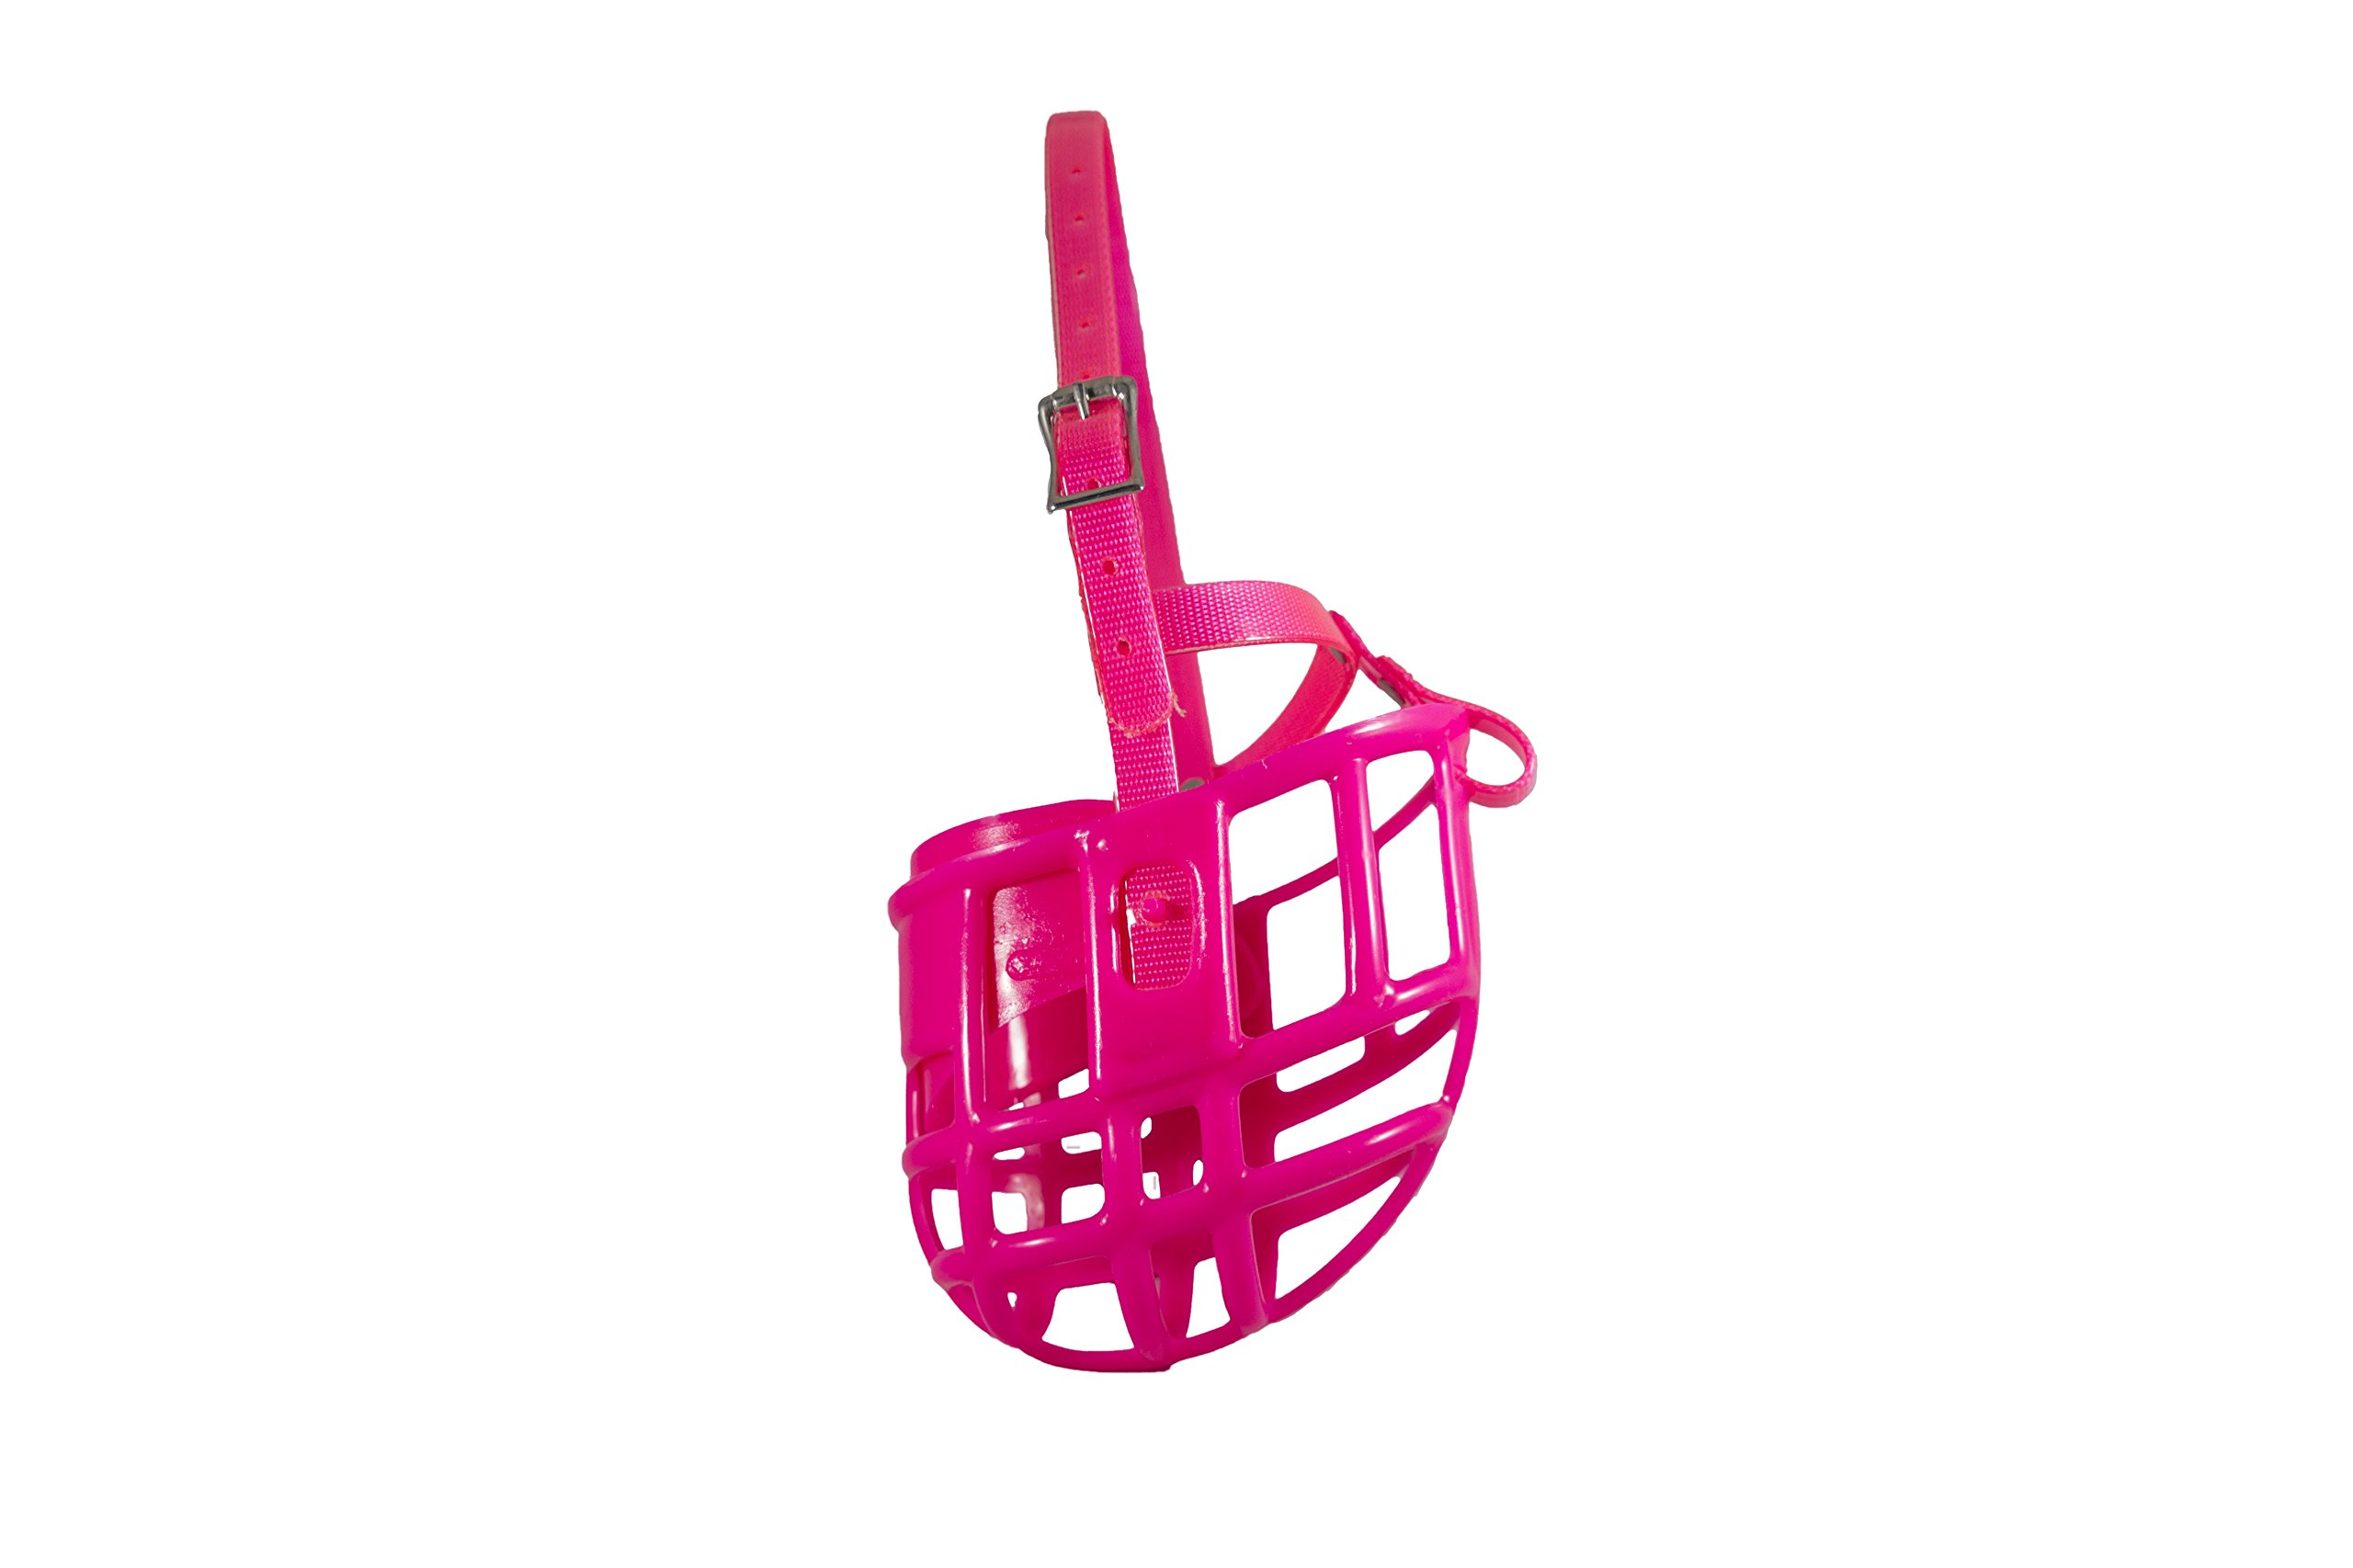 Birdwell Enterprises - Plastic Dog Muzzle with Adjustable Plastic Coated Nylon Headstall - Made in The USA - (Small, Pink)